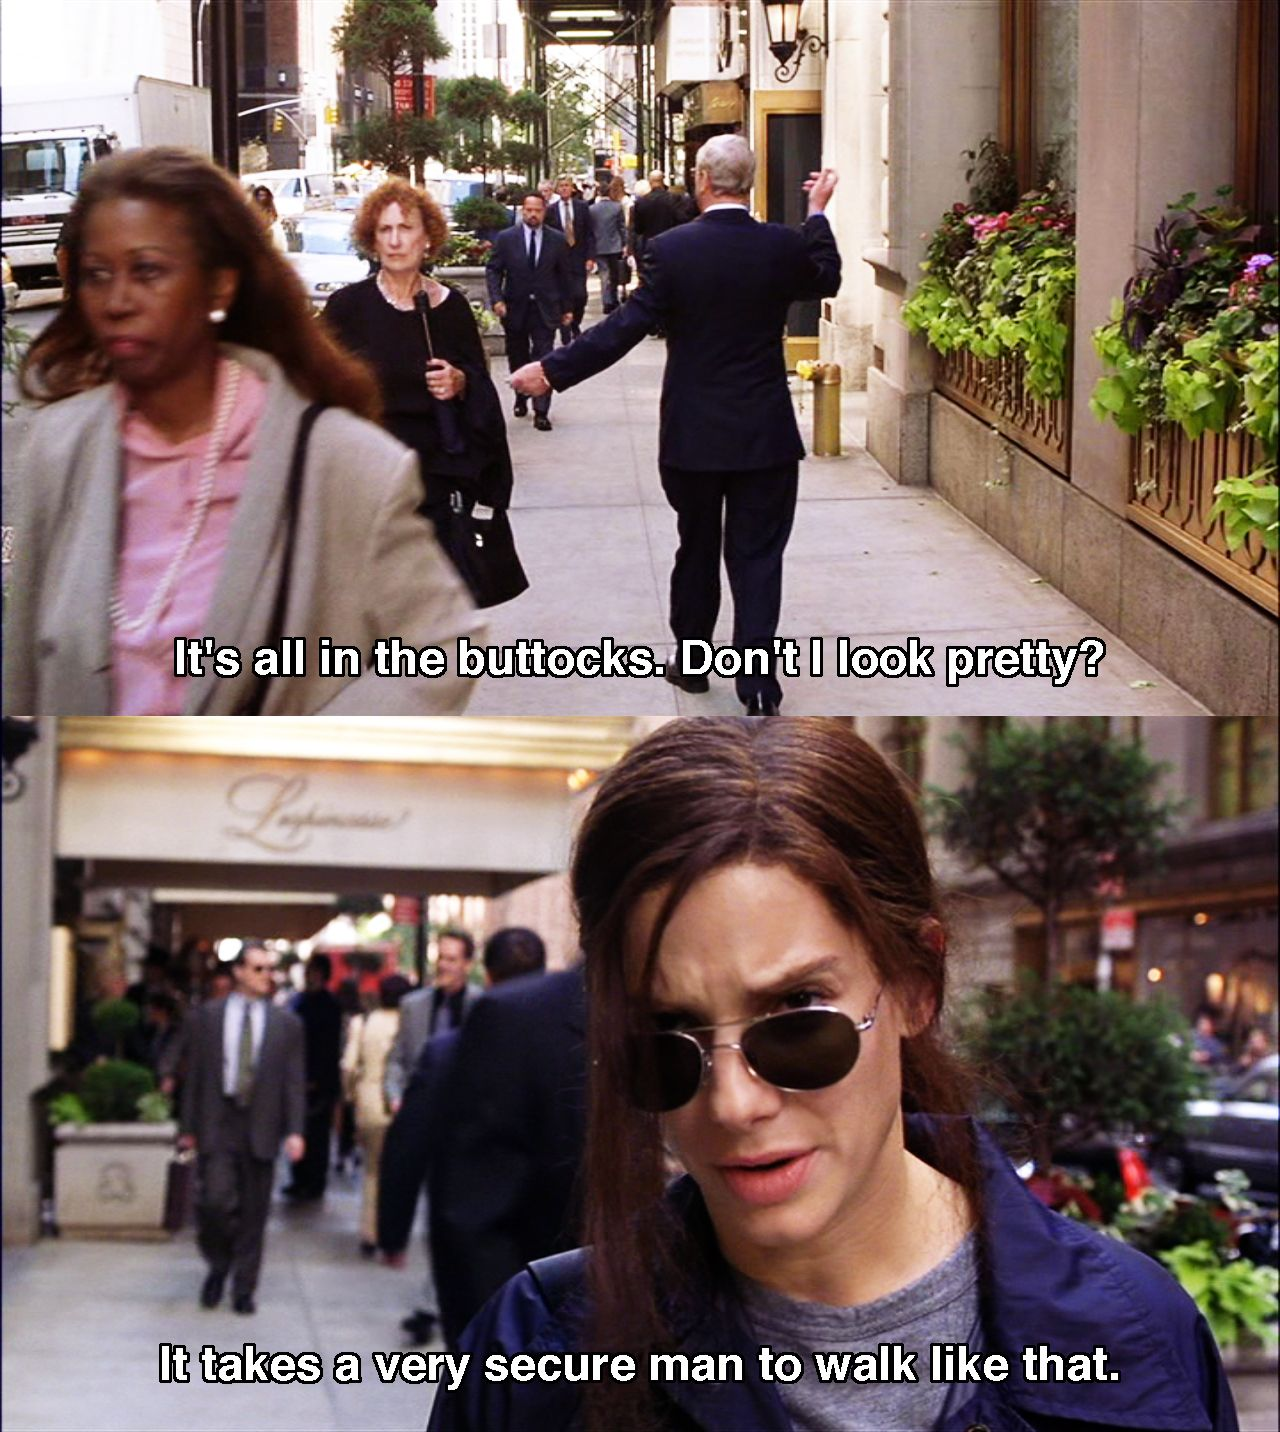 miss congeniality An fbi agent must go undercover in the miss united states beauty pageant to prevent a group from bombing the event.